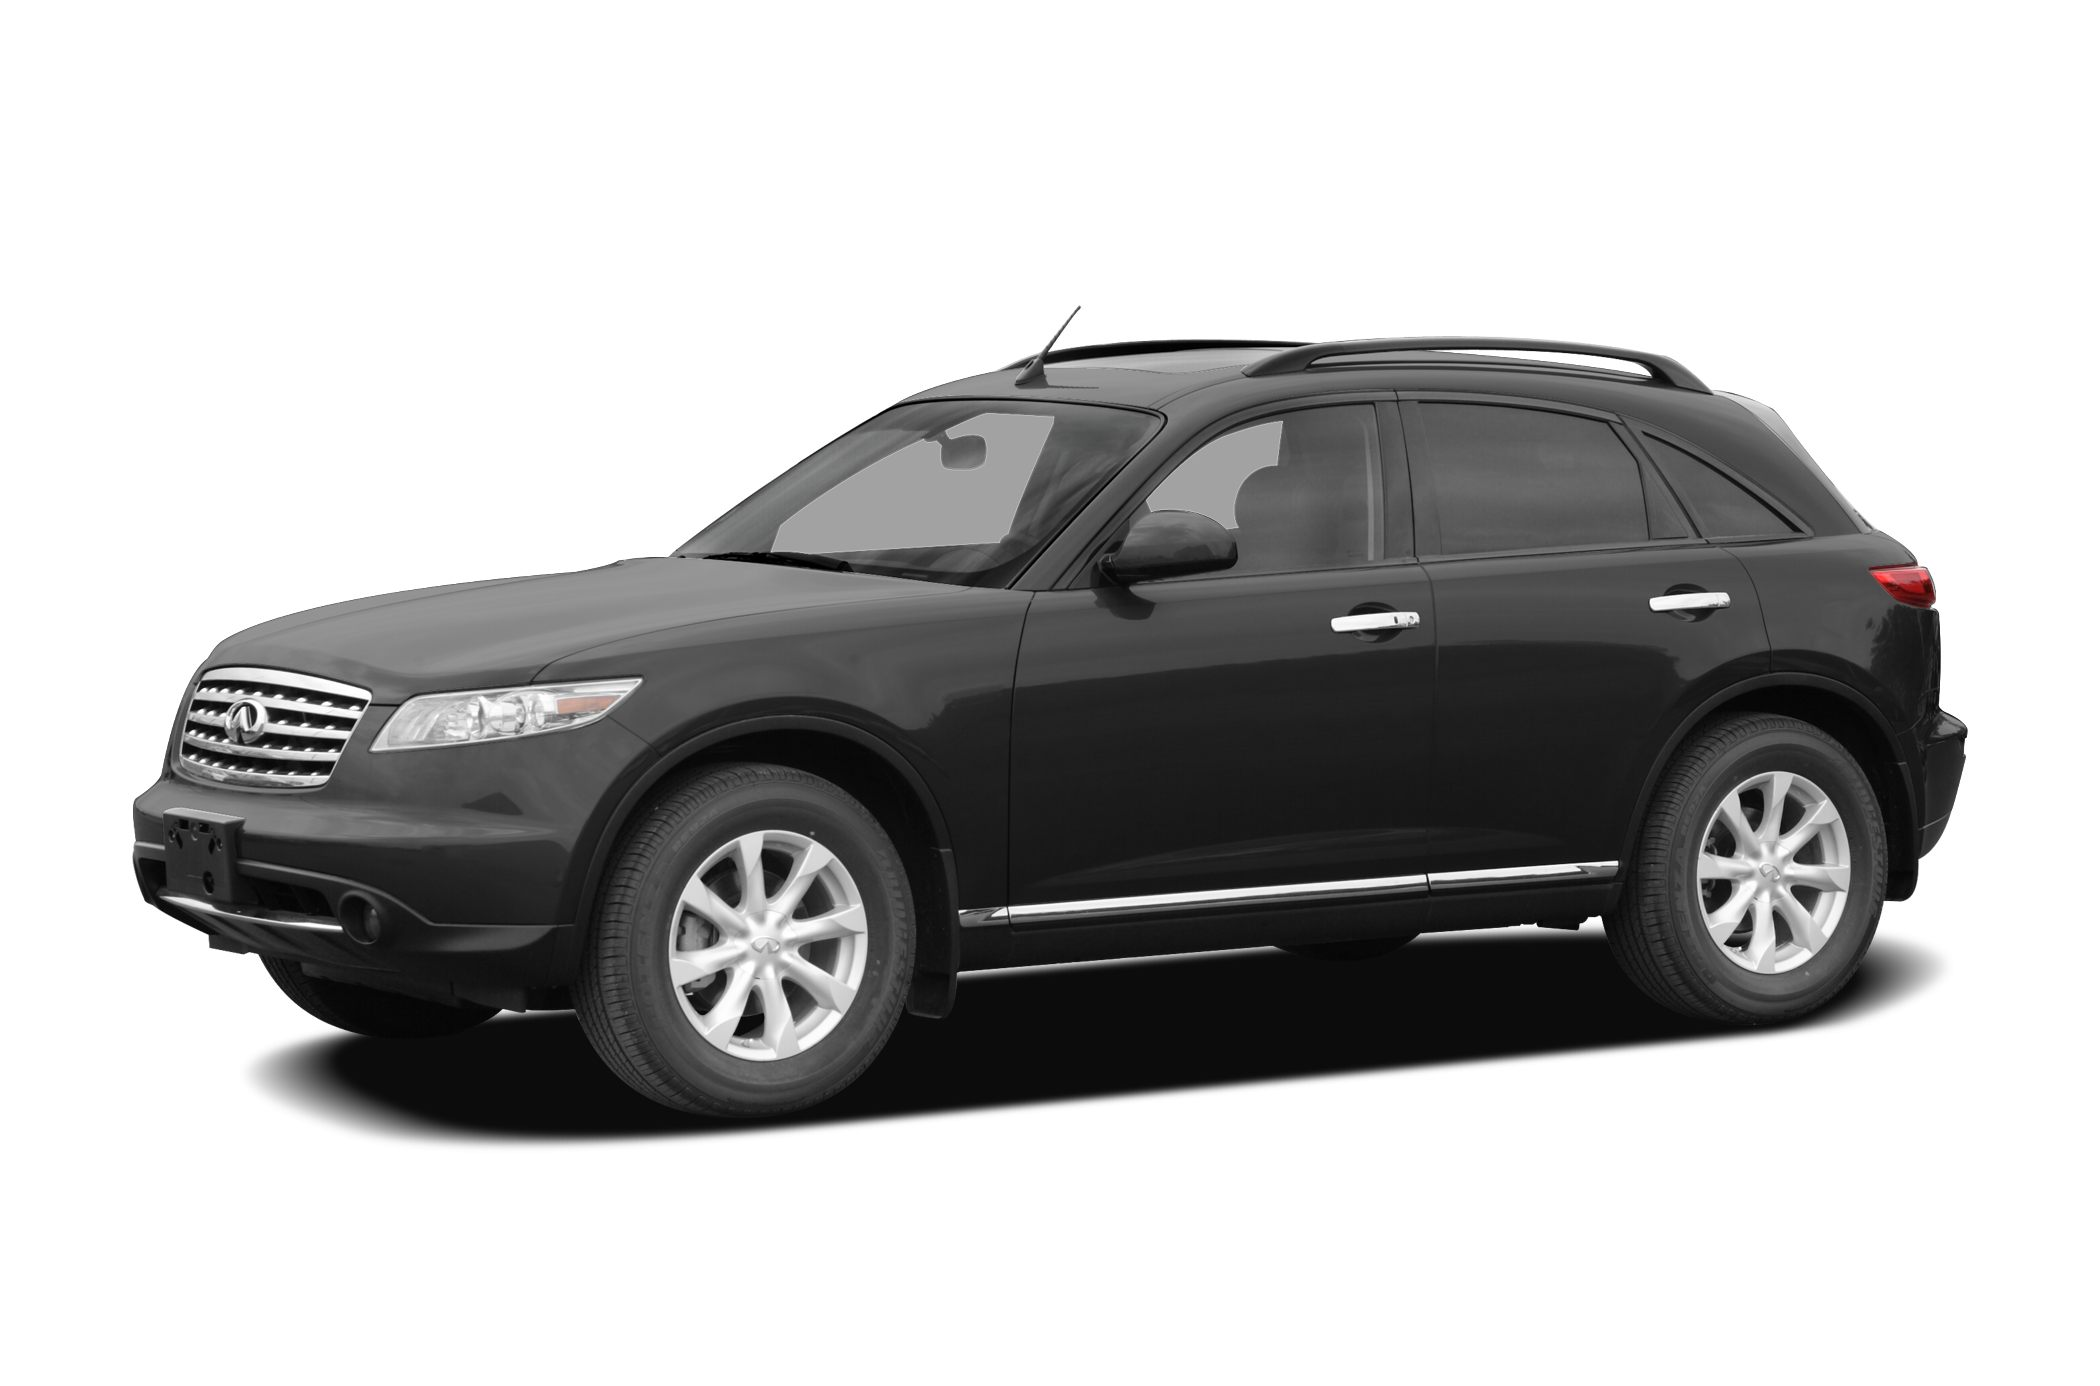 2006 Infiniti FX35